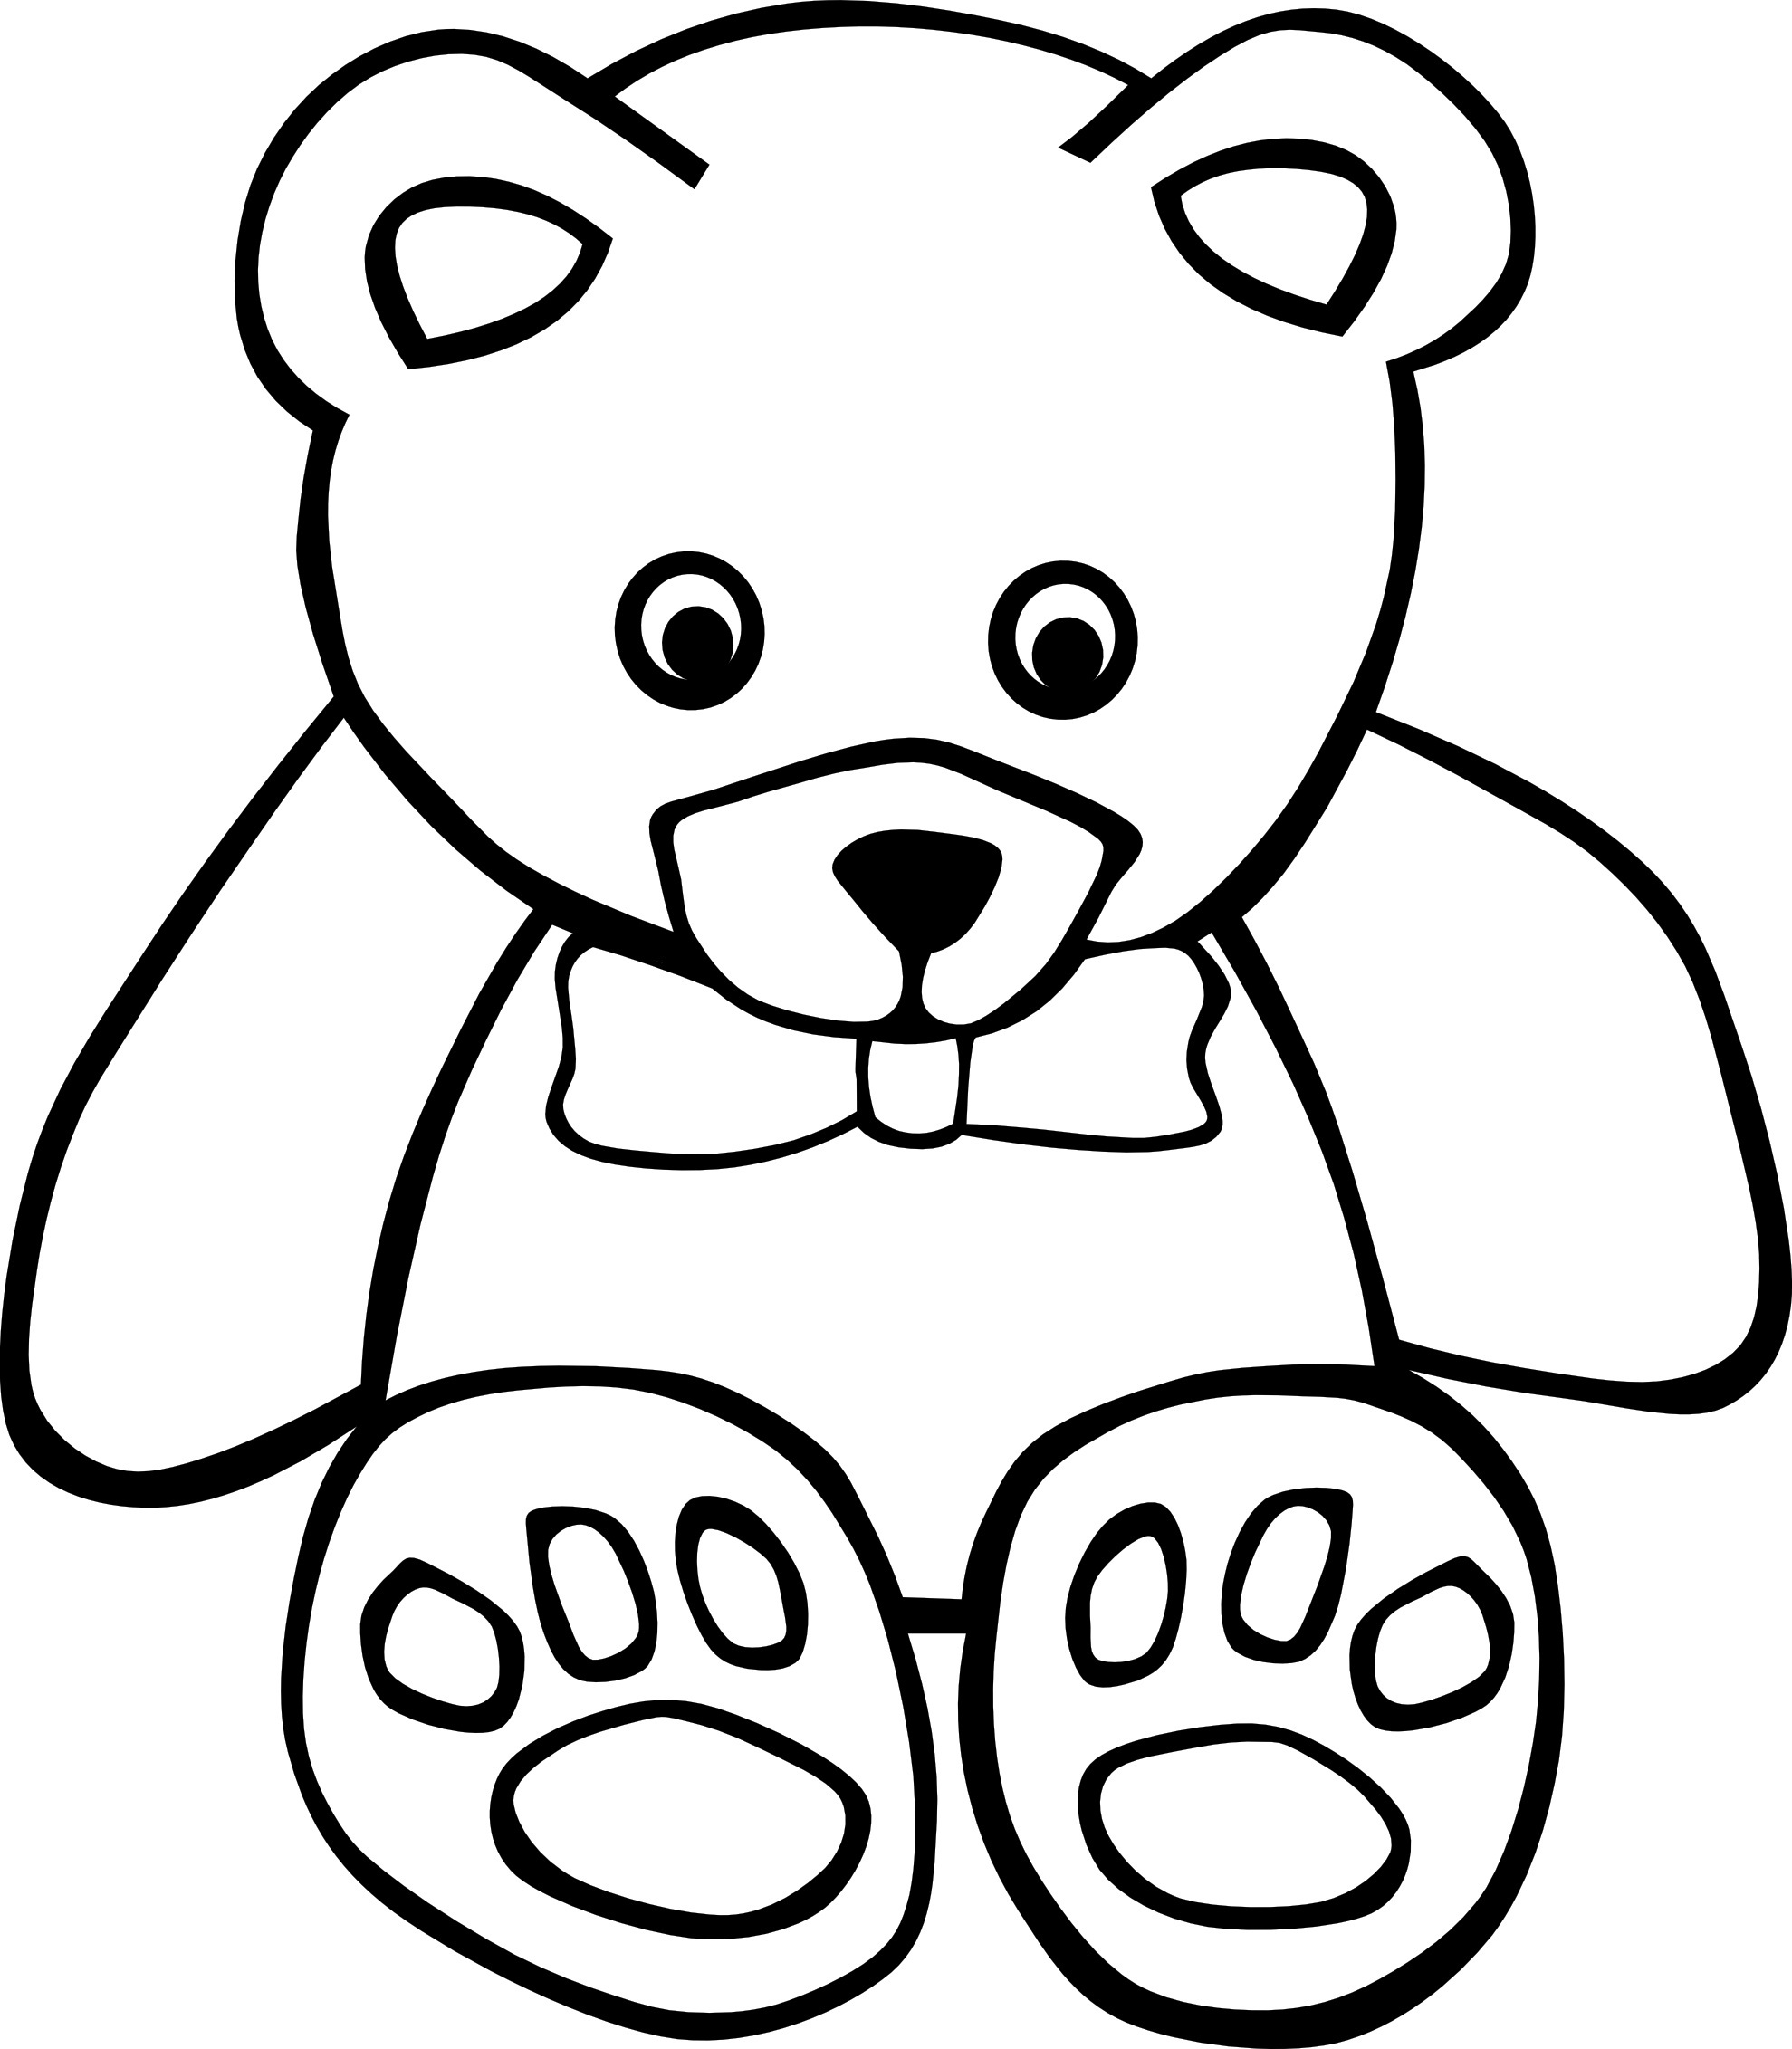 Stuffed Animal clipart #7, Download drawings